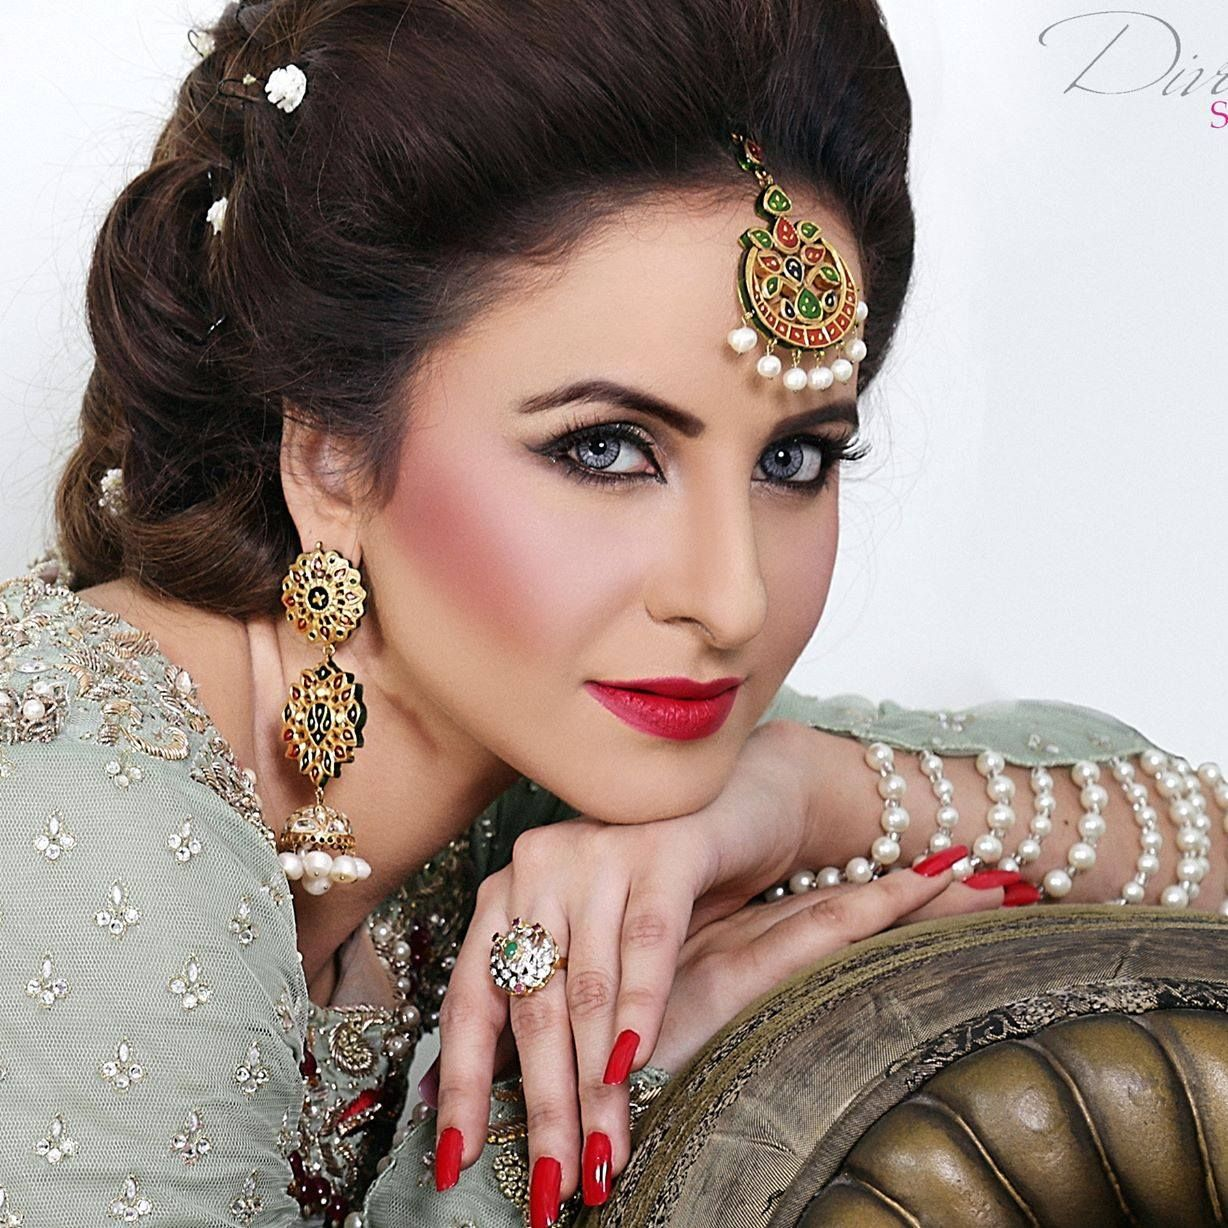 Makeup by diva beauty salon bridal makeup pinterest for Adiva beauty salon